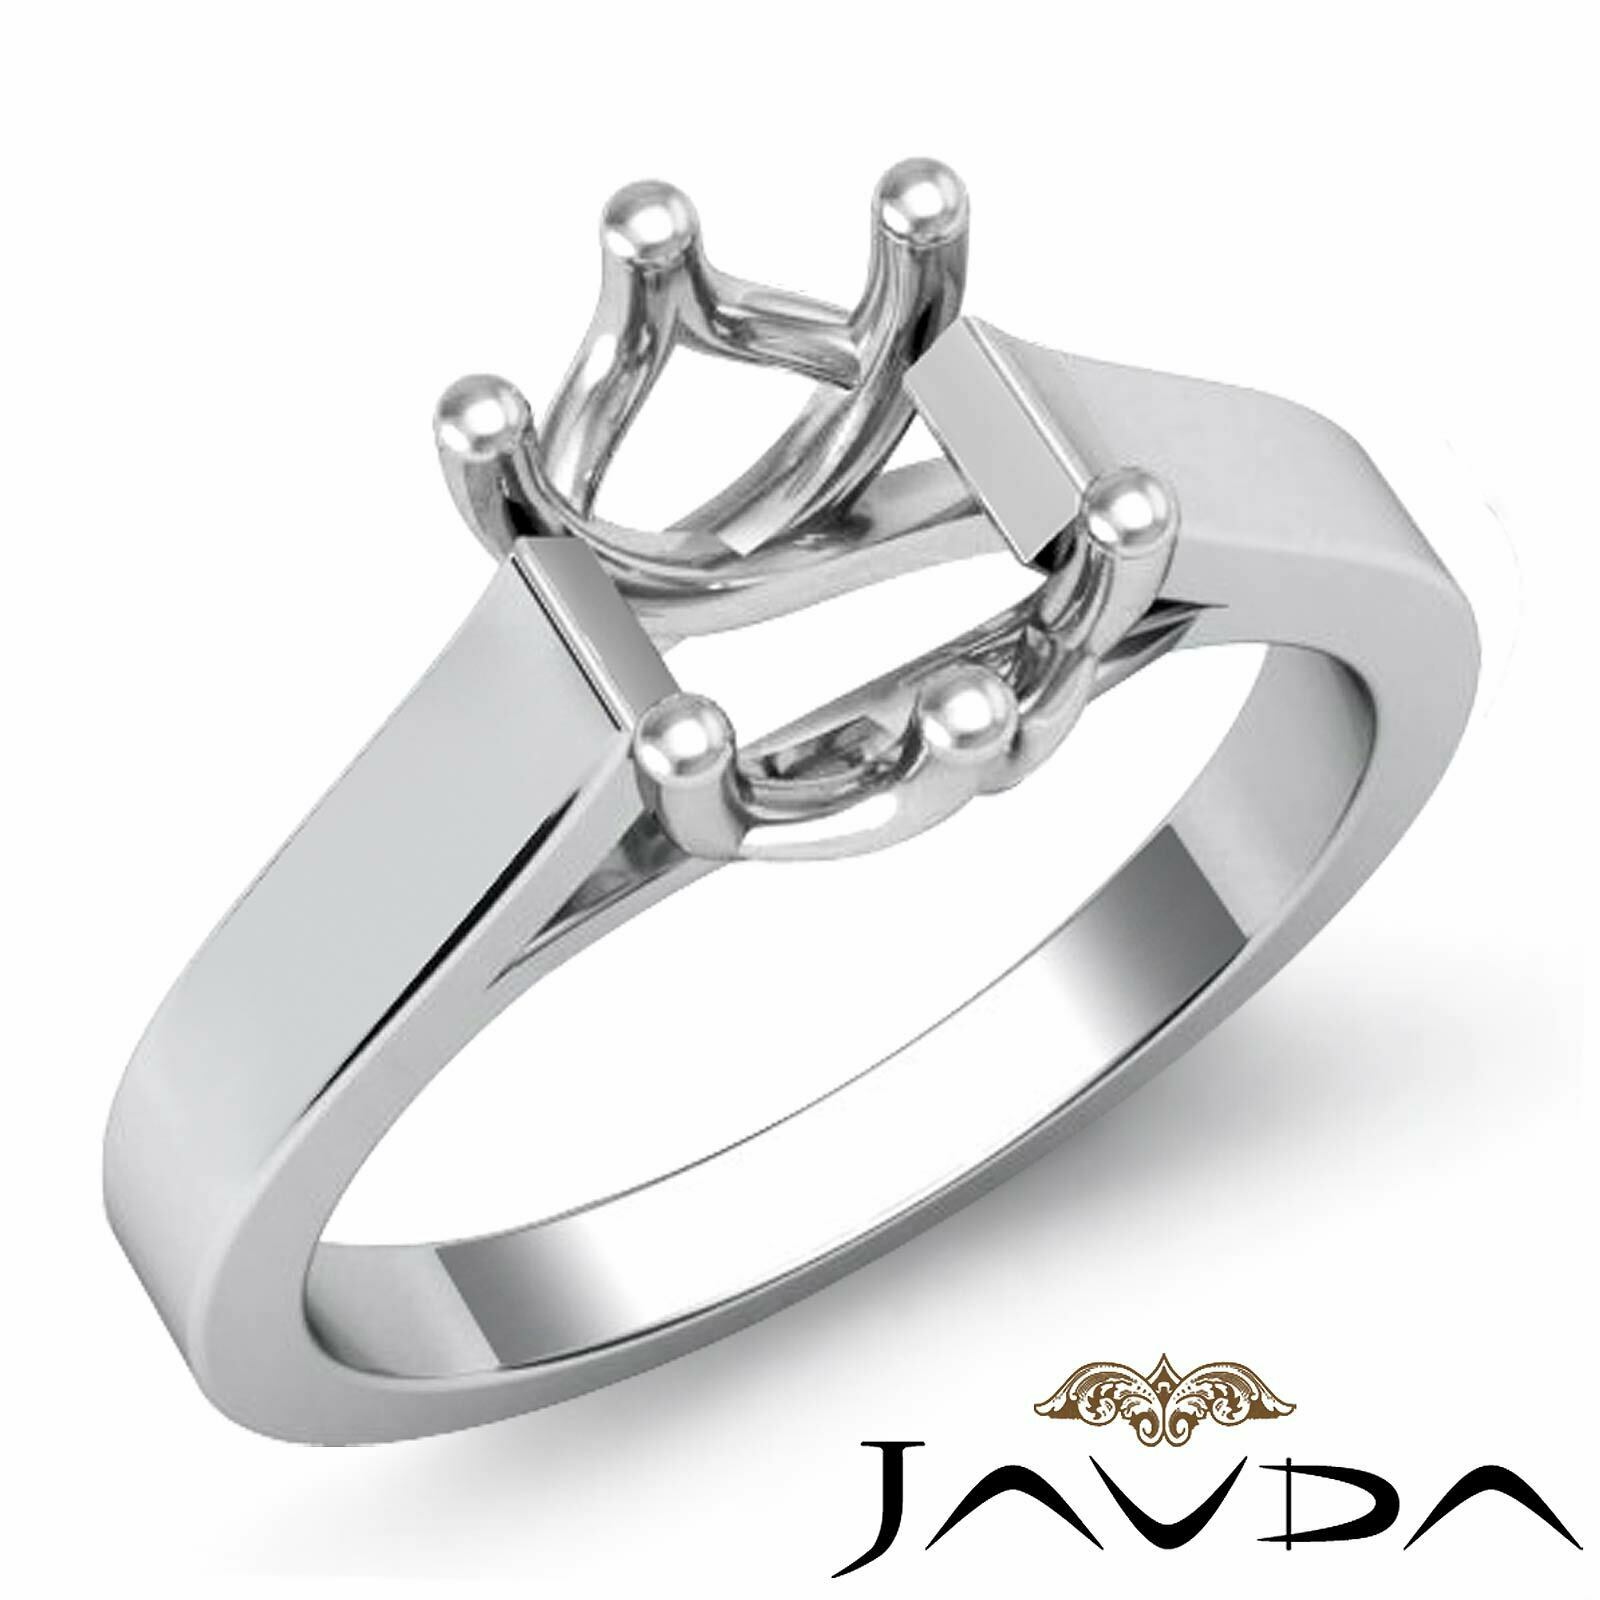 4.5g. Classic 6 Prong Cathedral Solitaire Trellis Engagement Ring Set Semi Mount